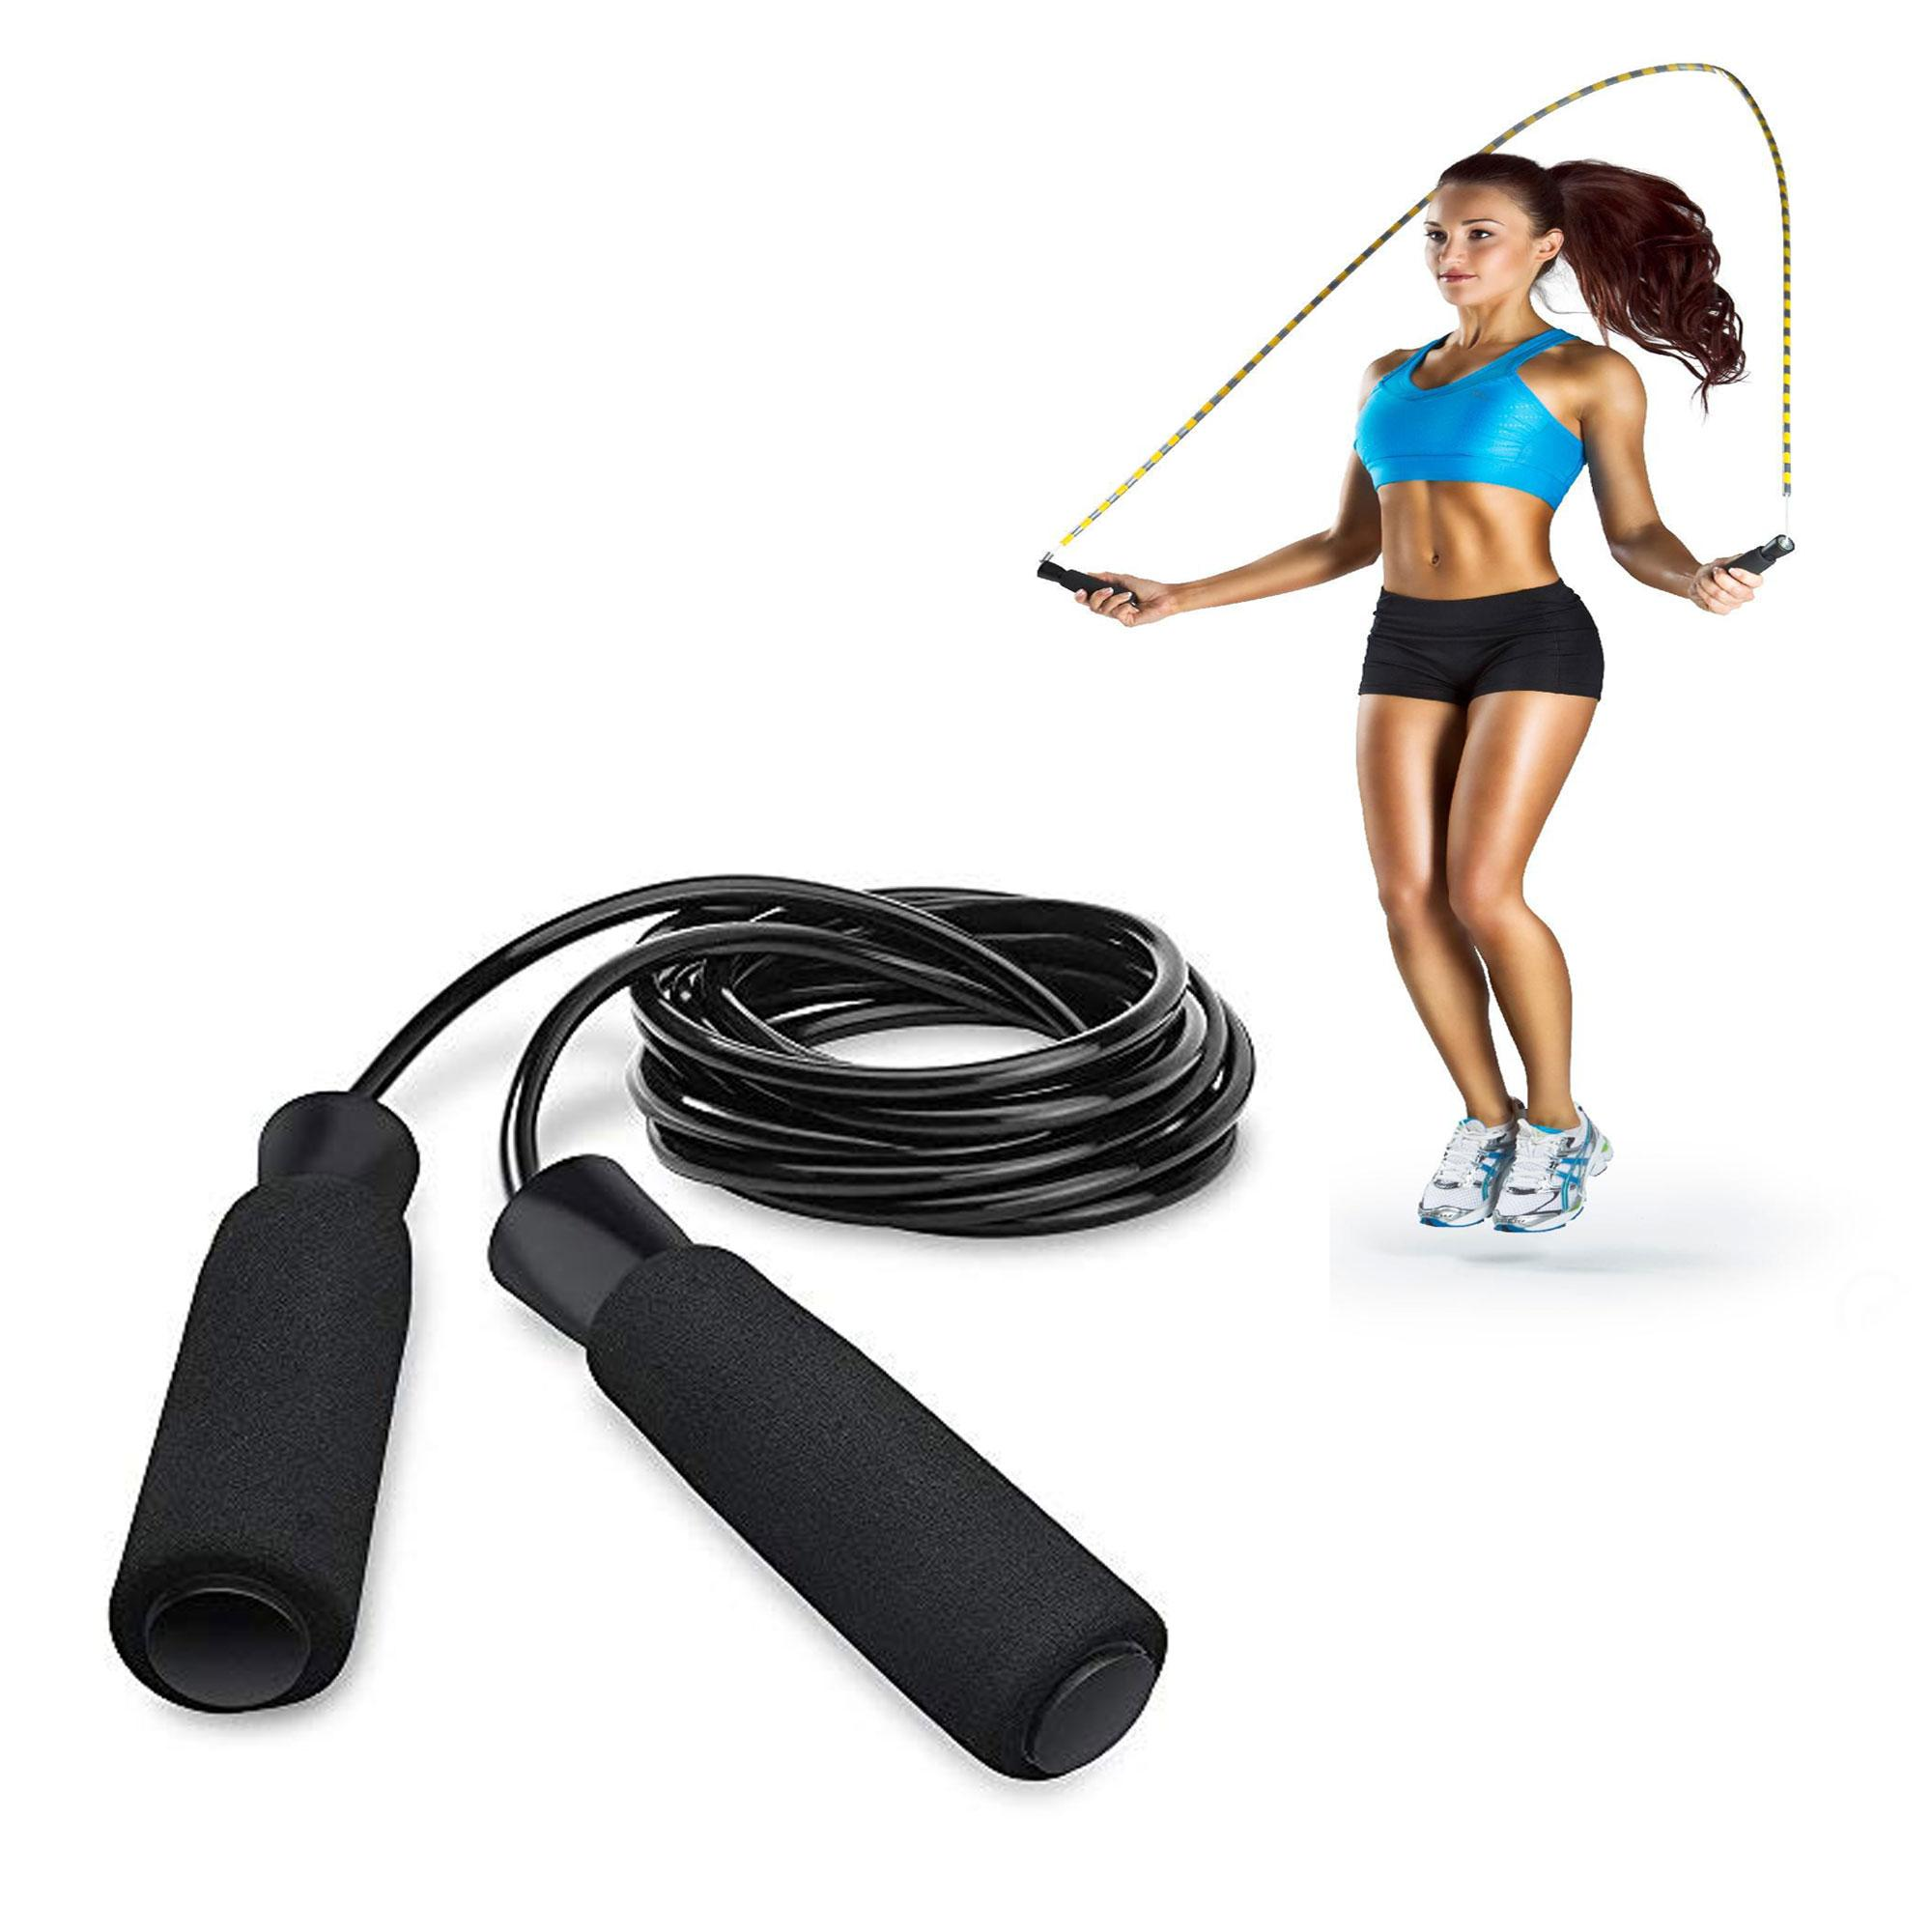 Exercise Tool Boxing Skipping Jump Rope Adjustable Bearing Speed Fitness (black) By Gonzalez General Merchandise.